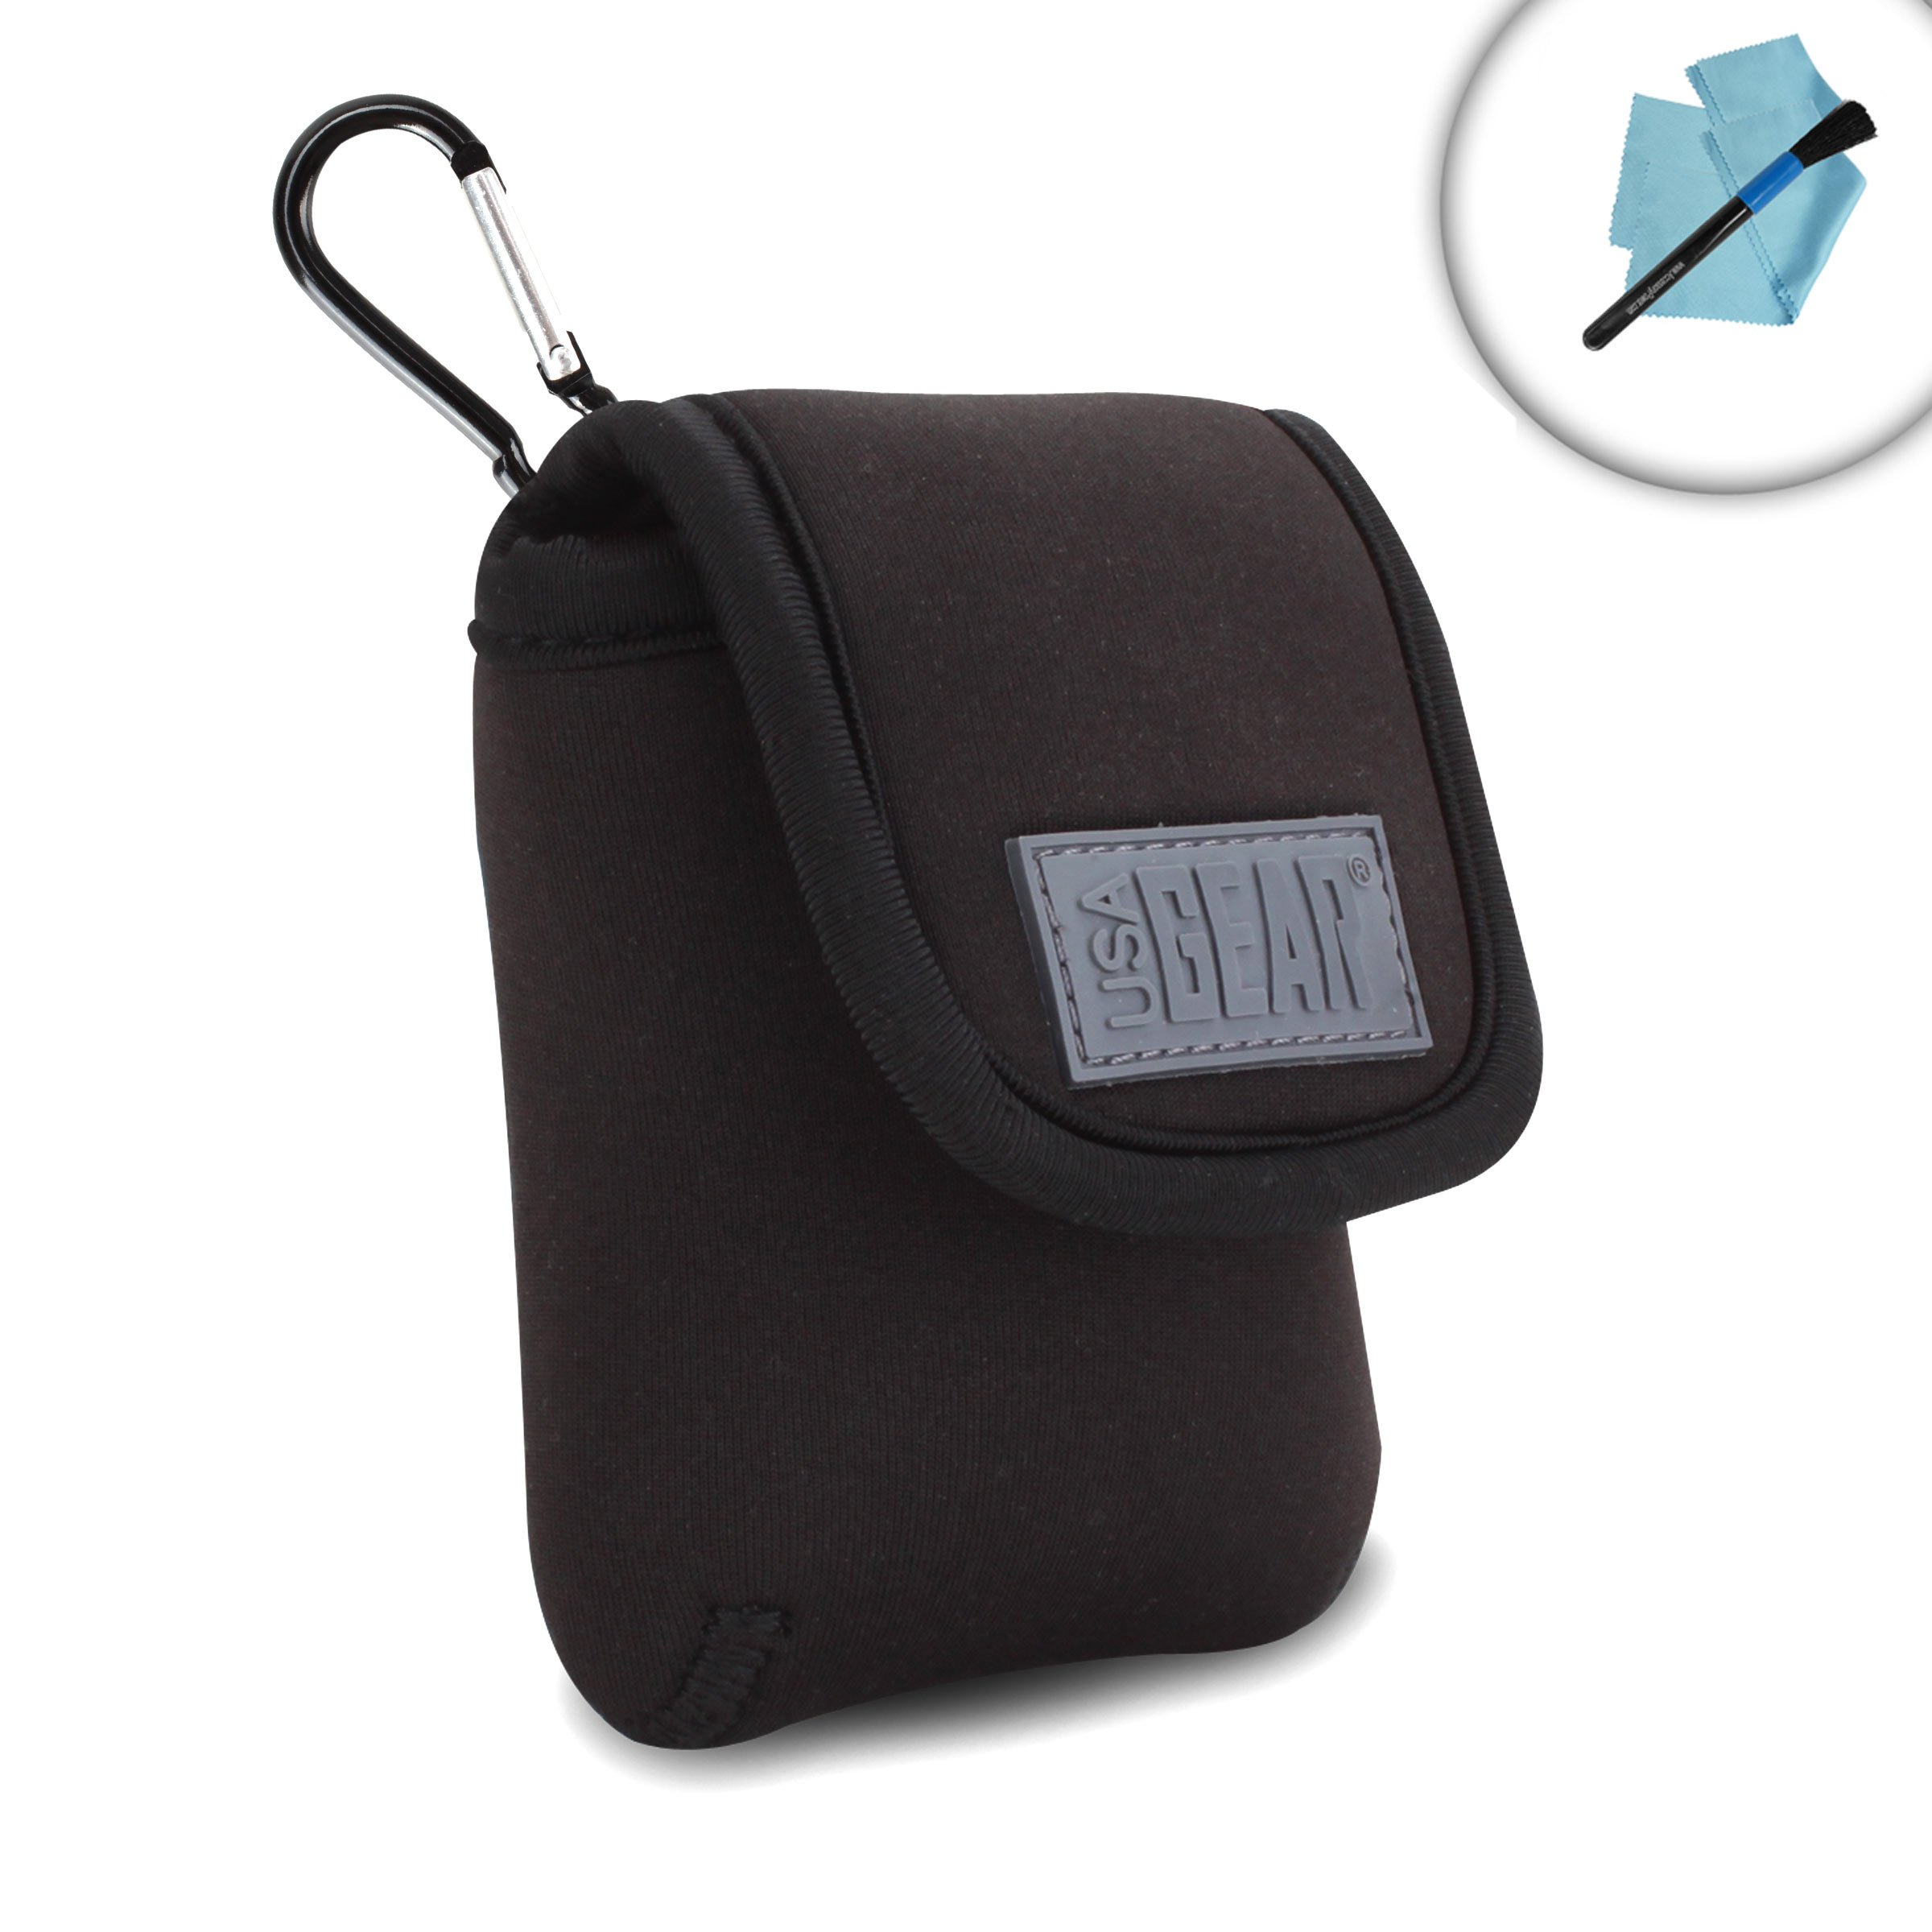 a8fbd00818b Get Quotations · USA GEAR Handheld GPS Navigation Case with Carabiner Clip  and Belt Loop for Bad Elf 2200